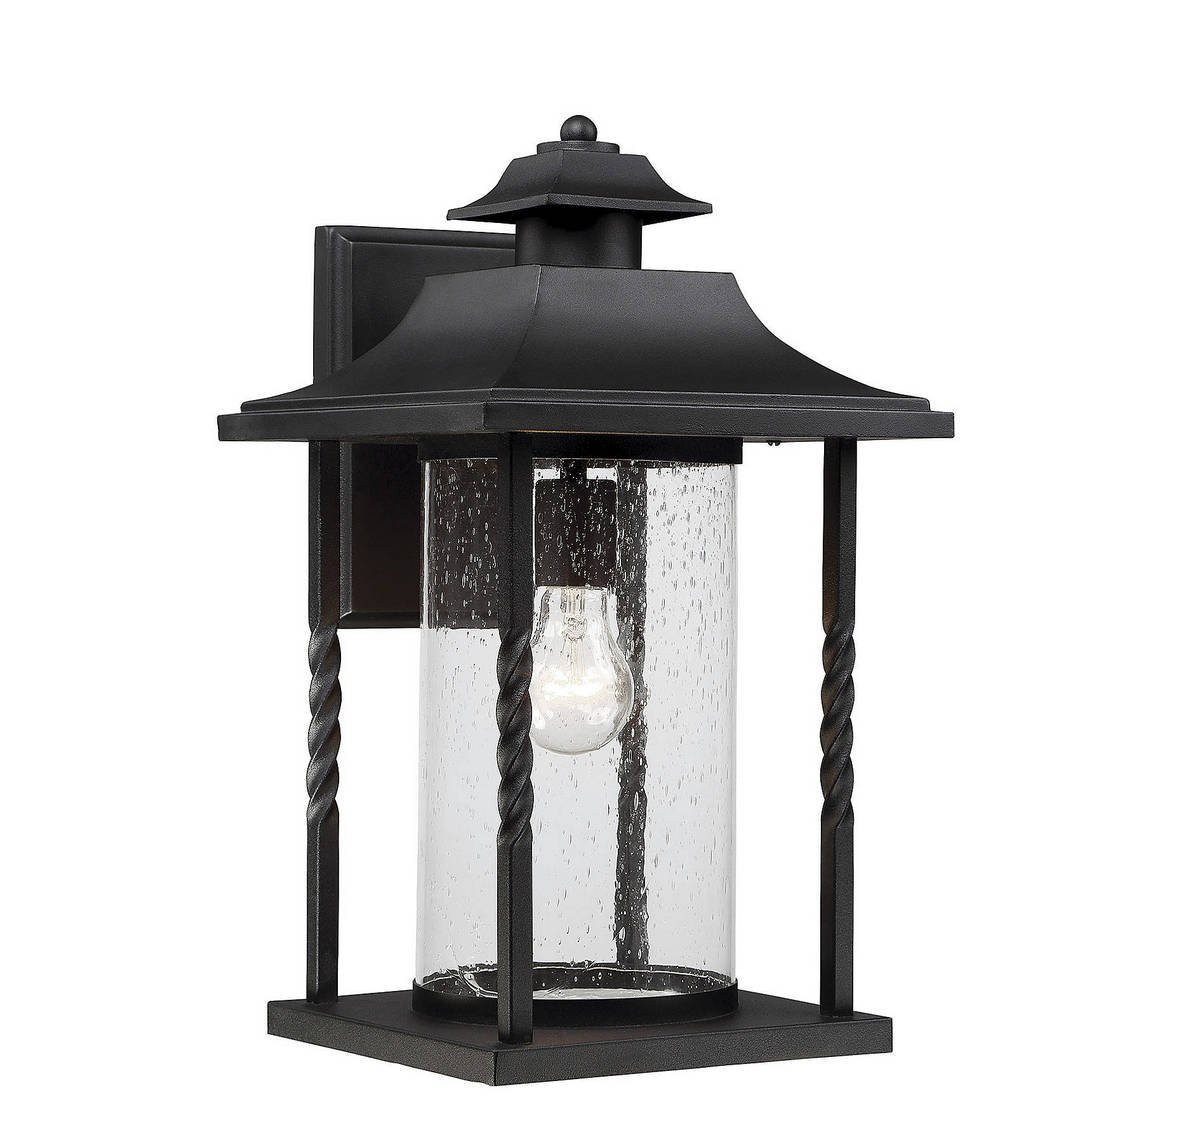 Savoy House 5-1234-BK Dorado Outdoor Wall Lantern in Textured Black